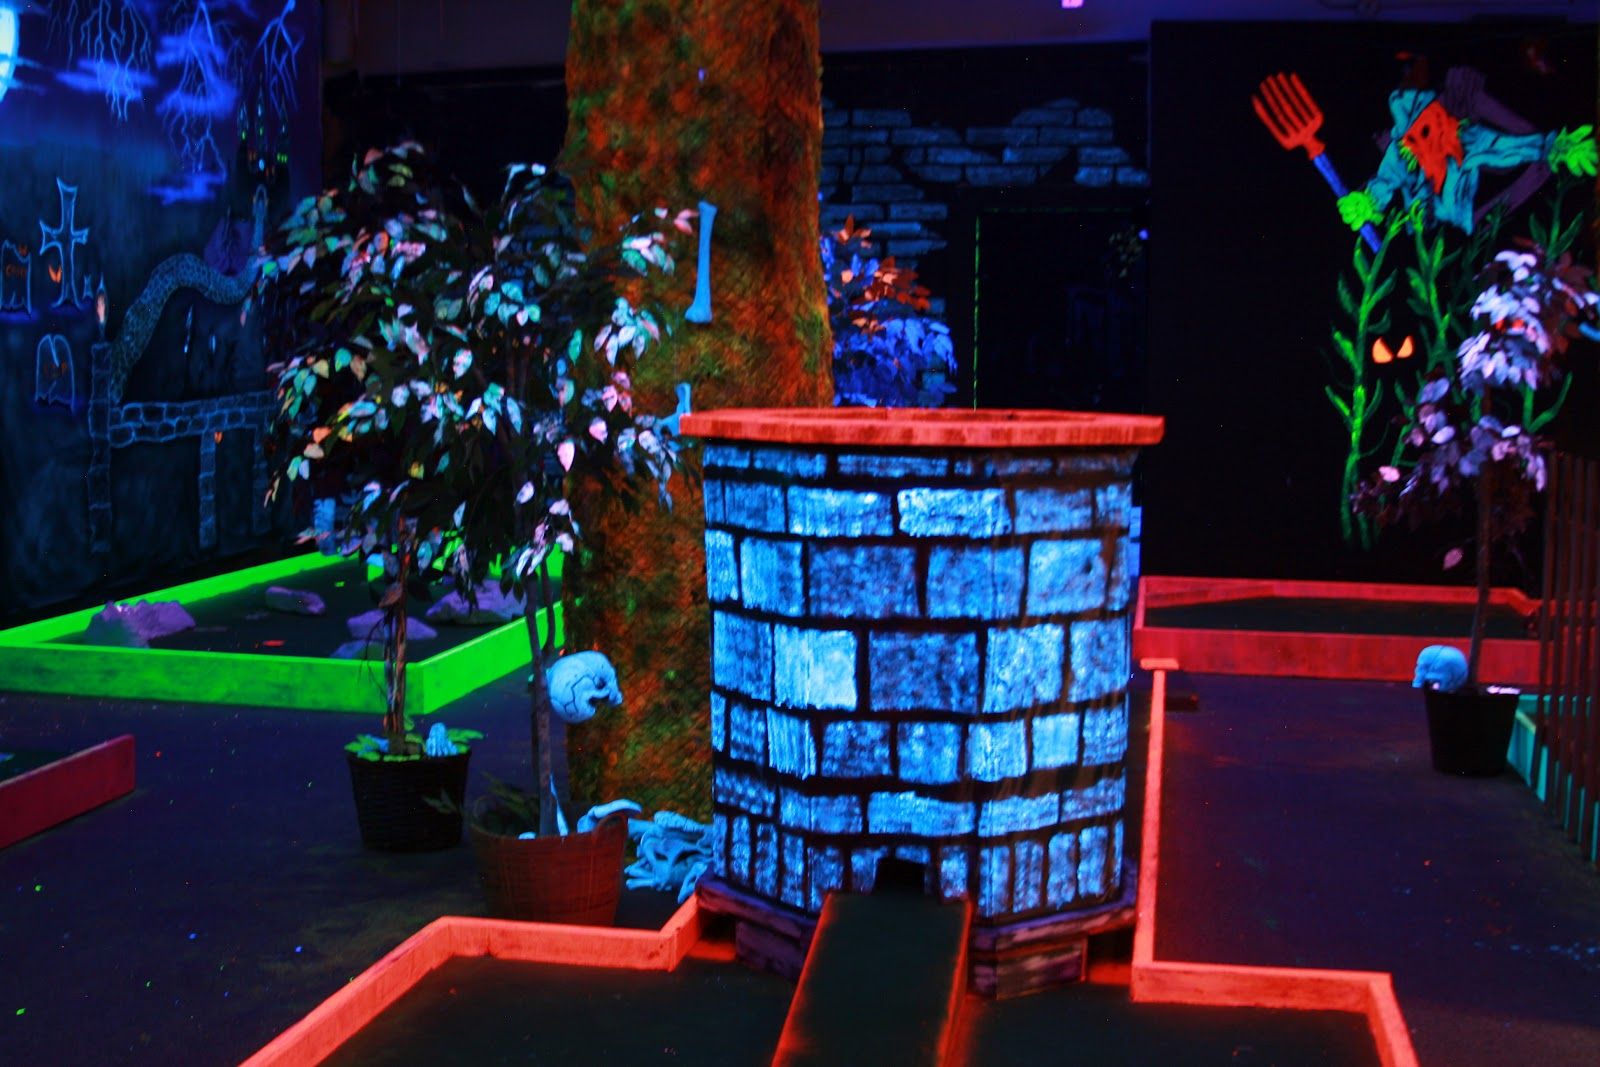 garage halloween party ideas - Enjoy Utah Haunted Mini Golf and Halloween Party